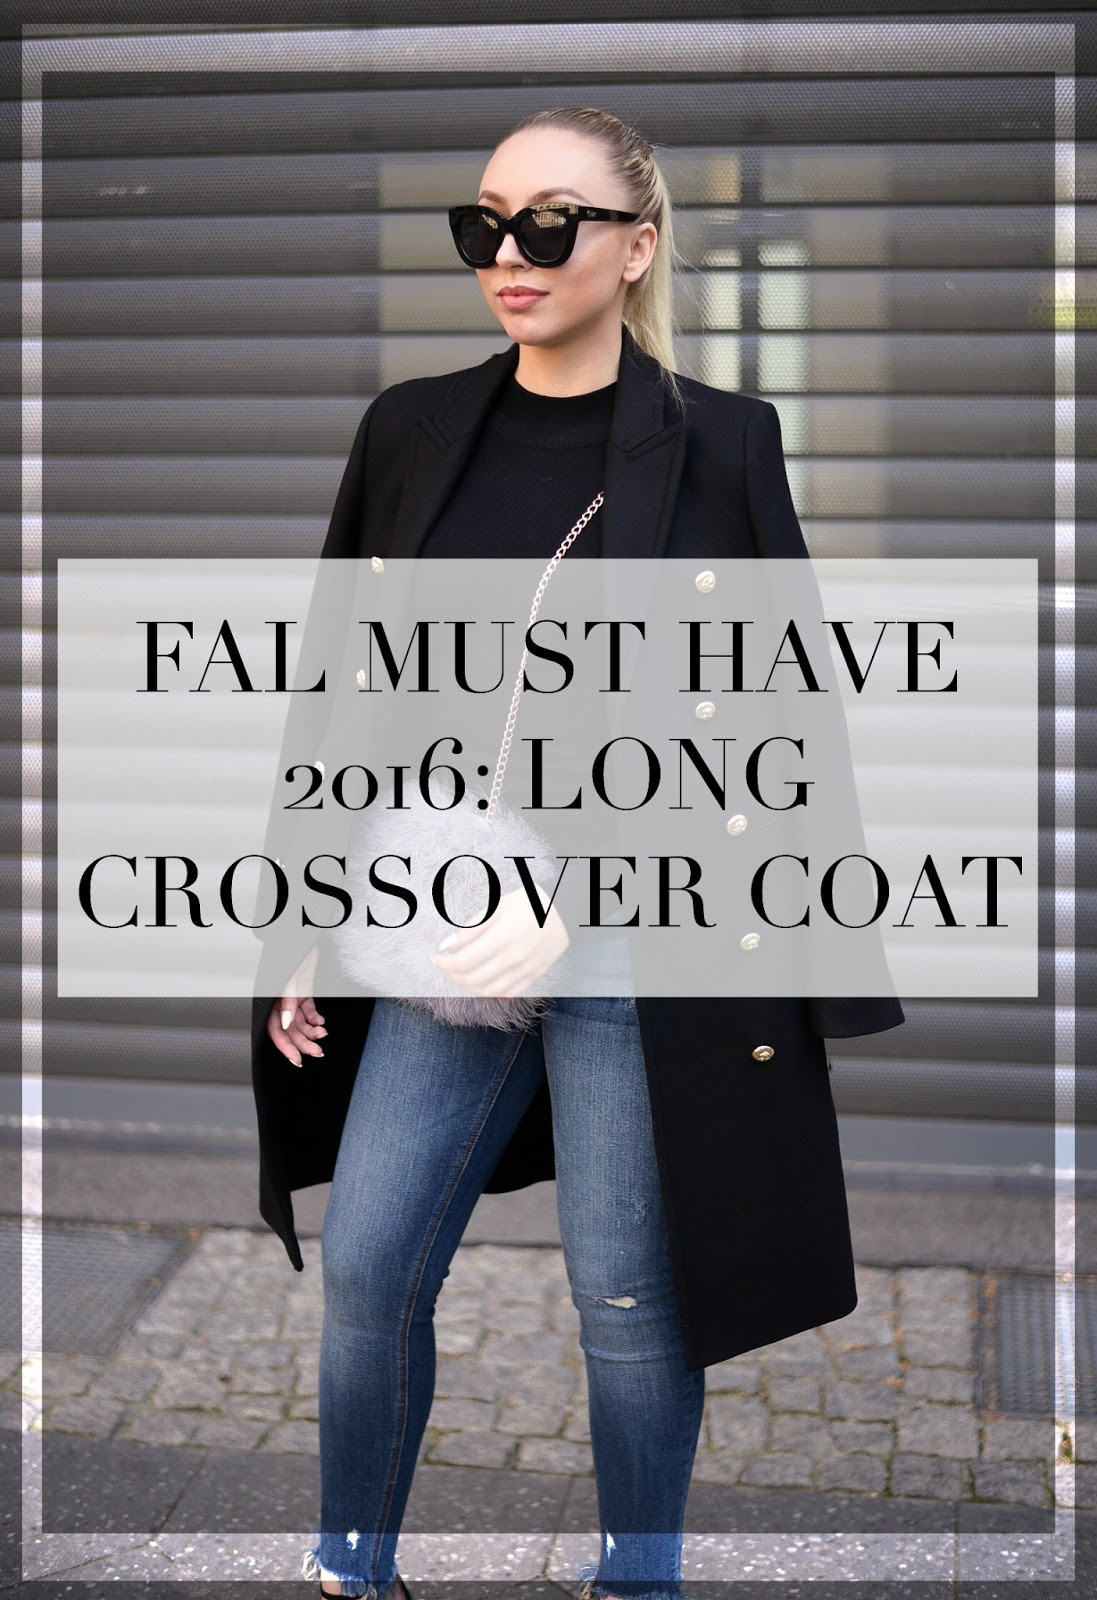 fall must have 2016: long crossover coat from zara